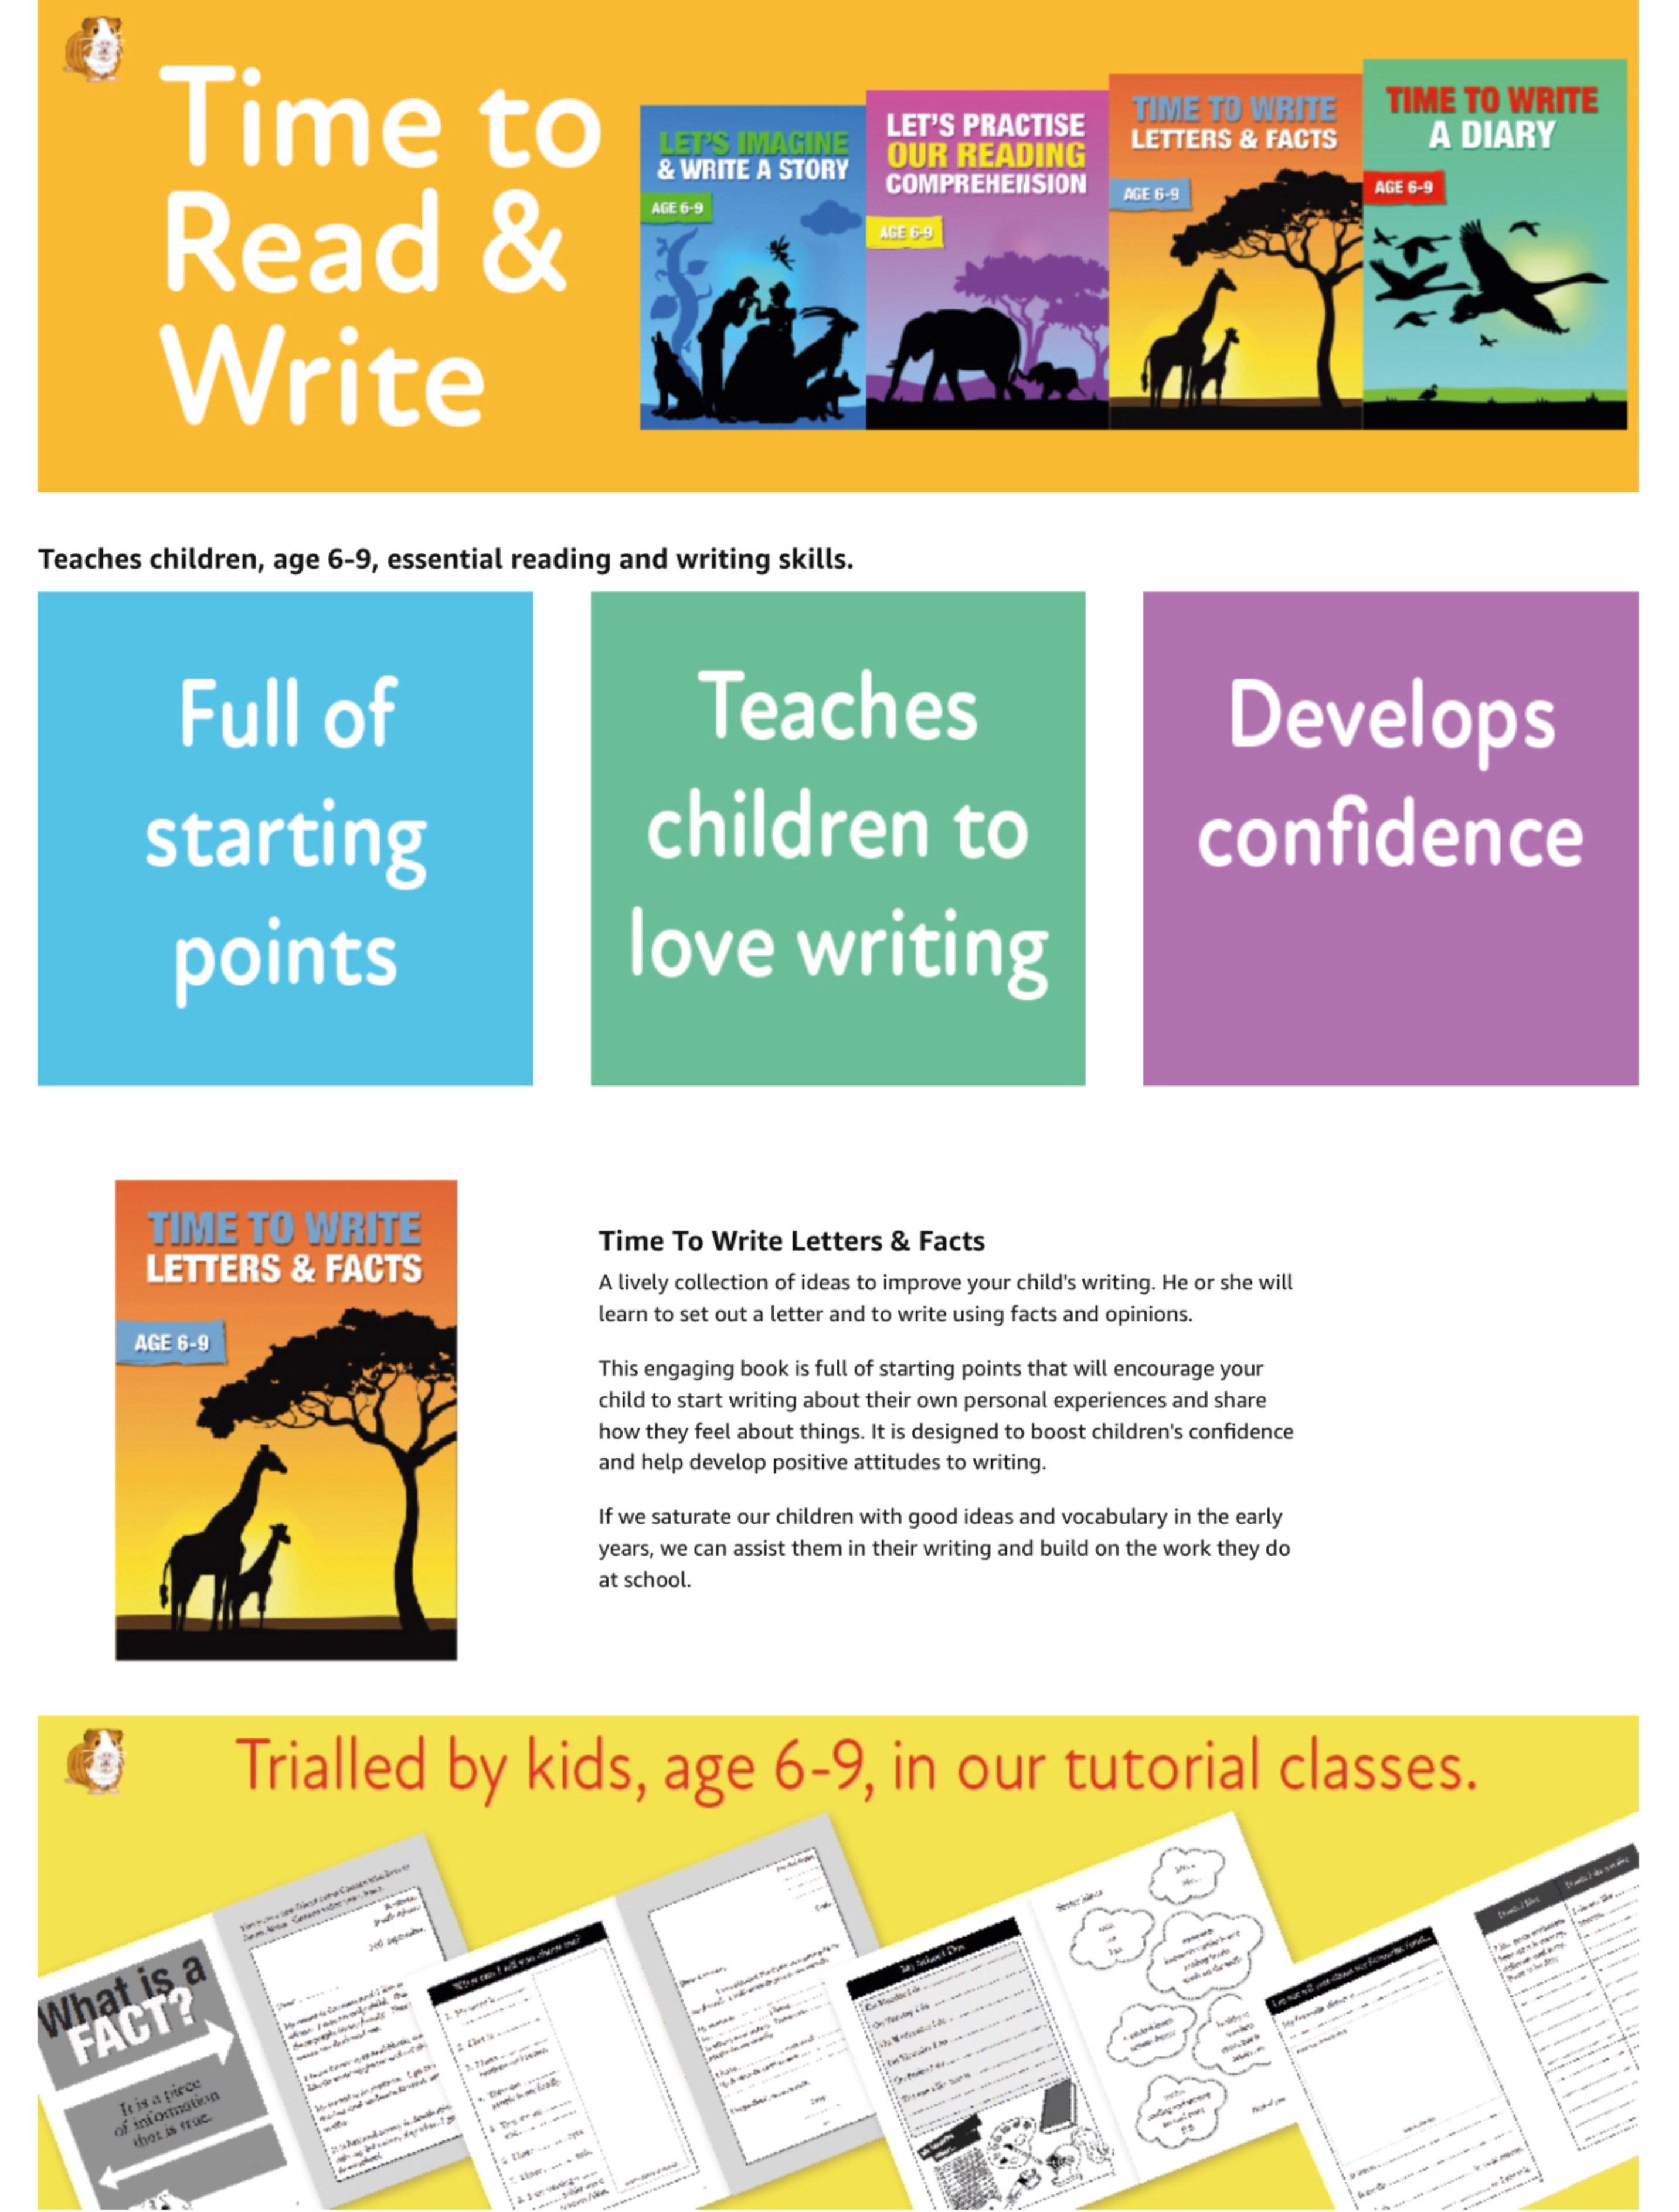 Time To Read & Write series: Books 1-4  (6-9 years) Print Version